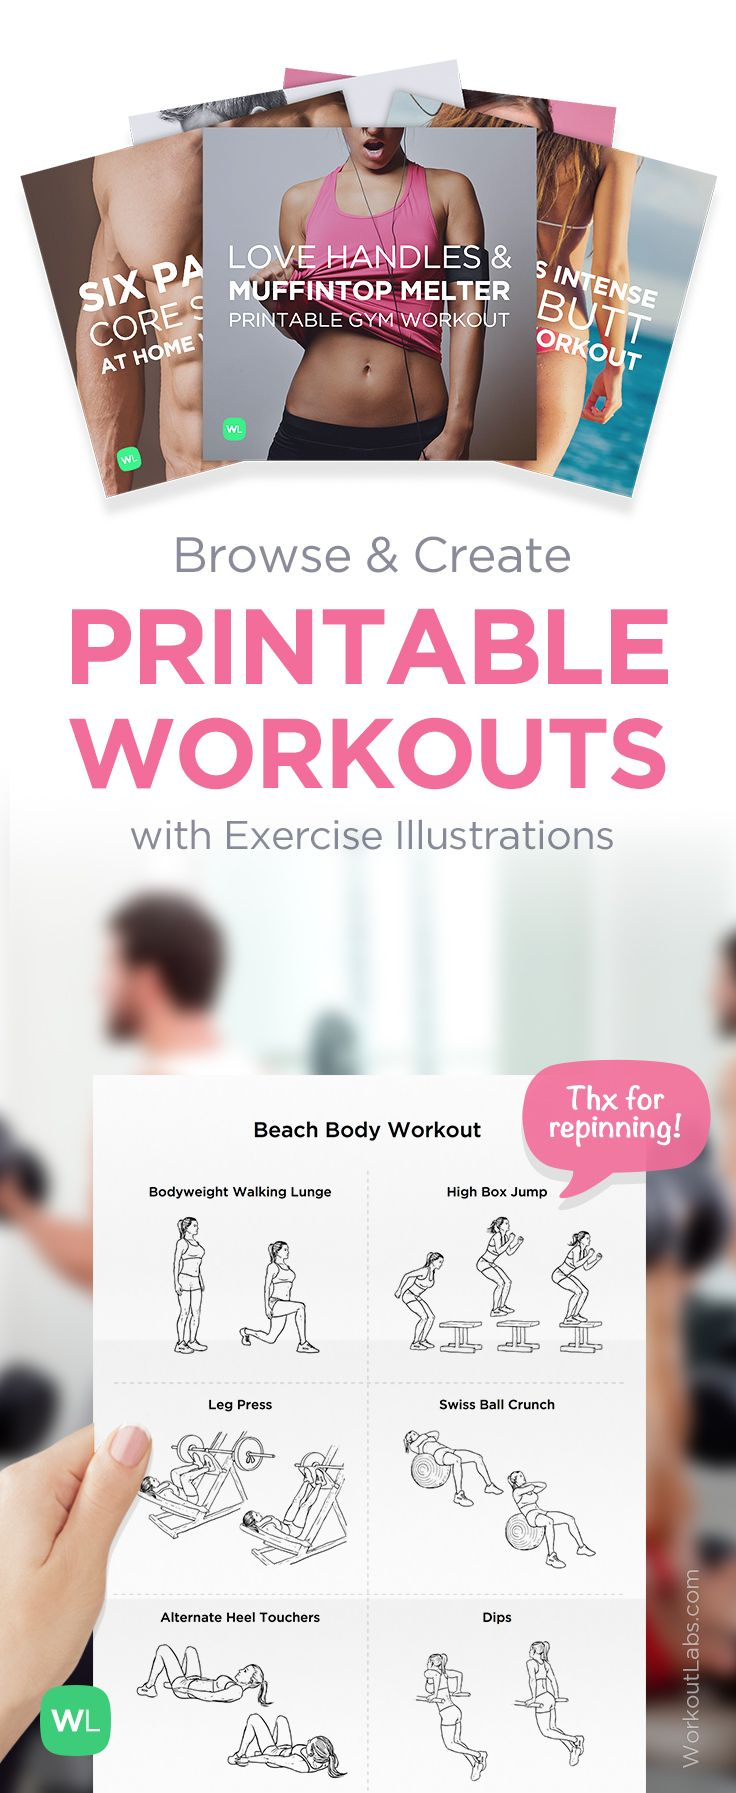 Free Printable Routines, Workout Packs And Exercise Programs - Free Printable Gym Workout Plans